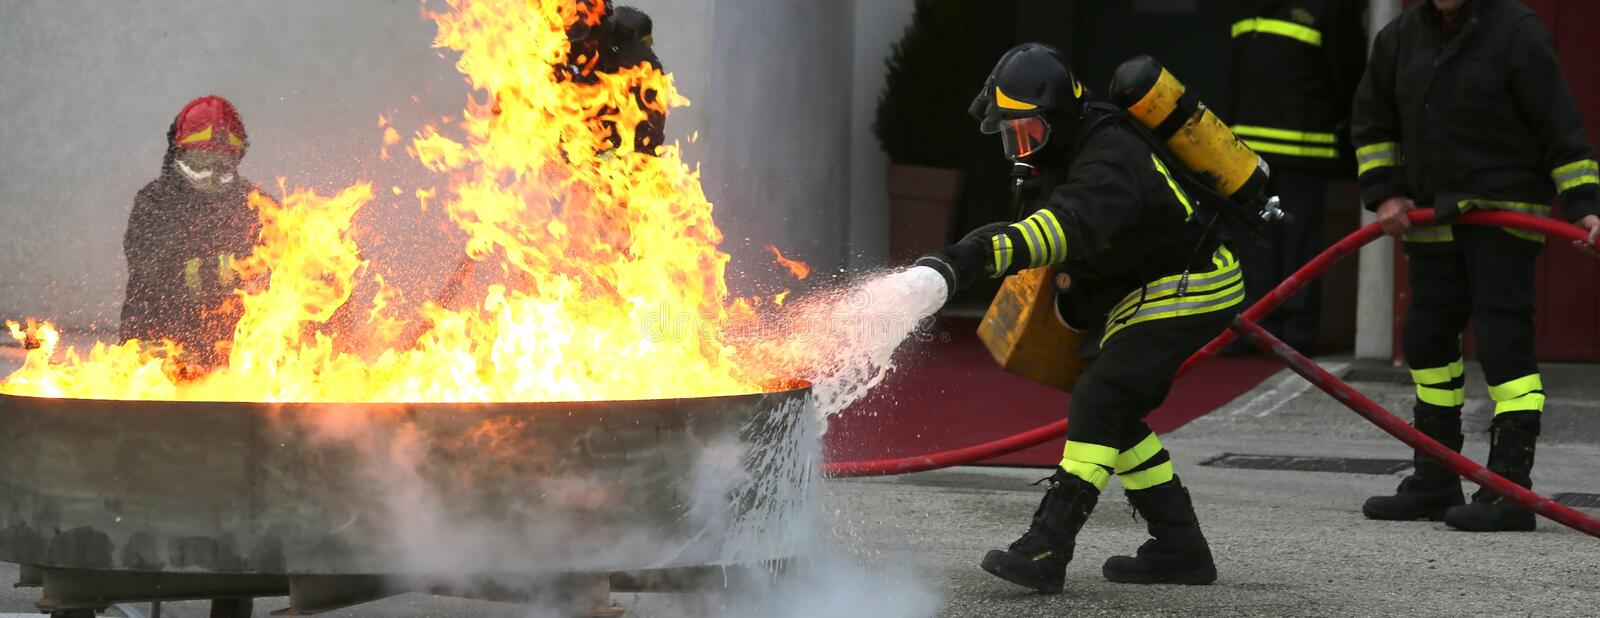 Firefighters during the exercise to extinguish a fire with foam royalty free stock photography